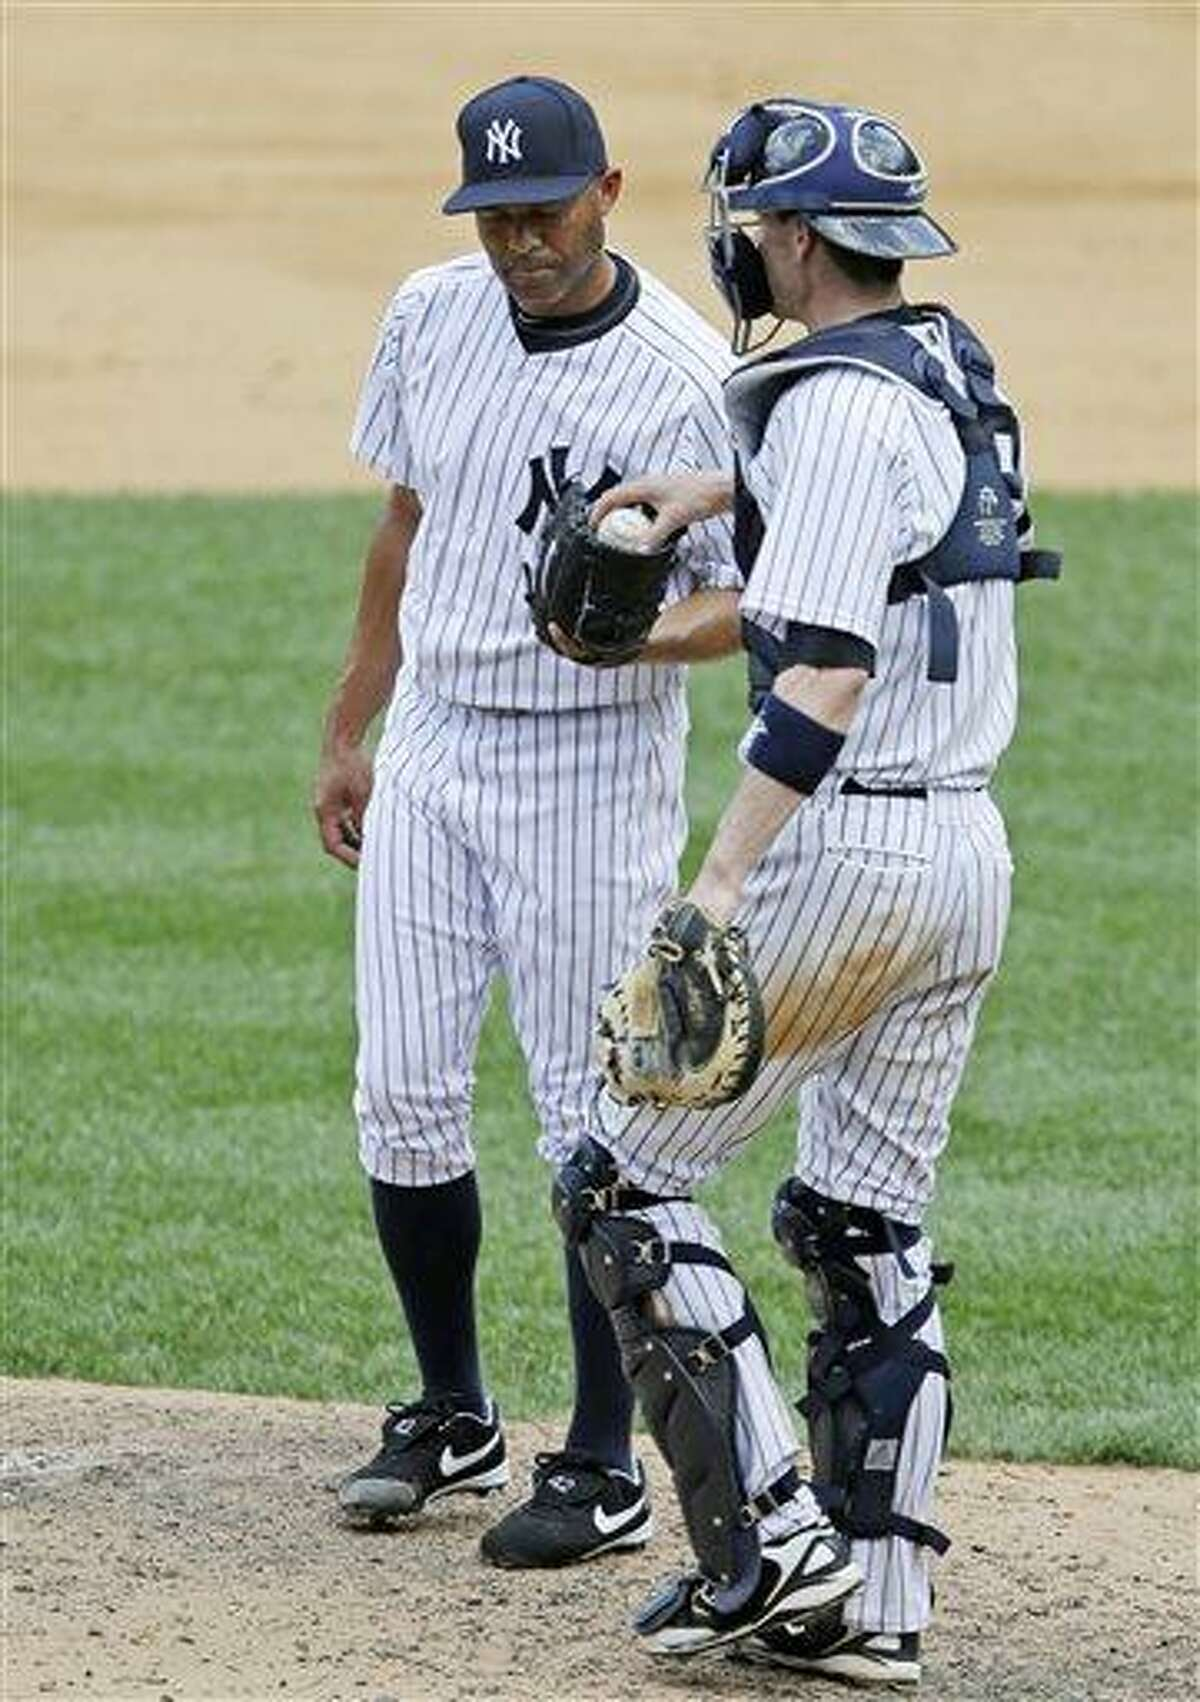 New York Yankees catcher Chris Stewart, right, hands a ball to New York Yankees relief pitcher Mariano Rivera after Rivera gave up a two-run home run to Baltimore Orioles Adam Jones, and then allowed a ground rule double to Matt Weiters in the Yankees 2-1 loss to the Orioles in a baseball game, Sunday, July 7, 2013, in New York. (AP Photo/Kathy Willens)